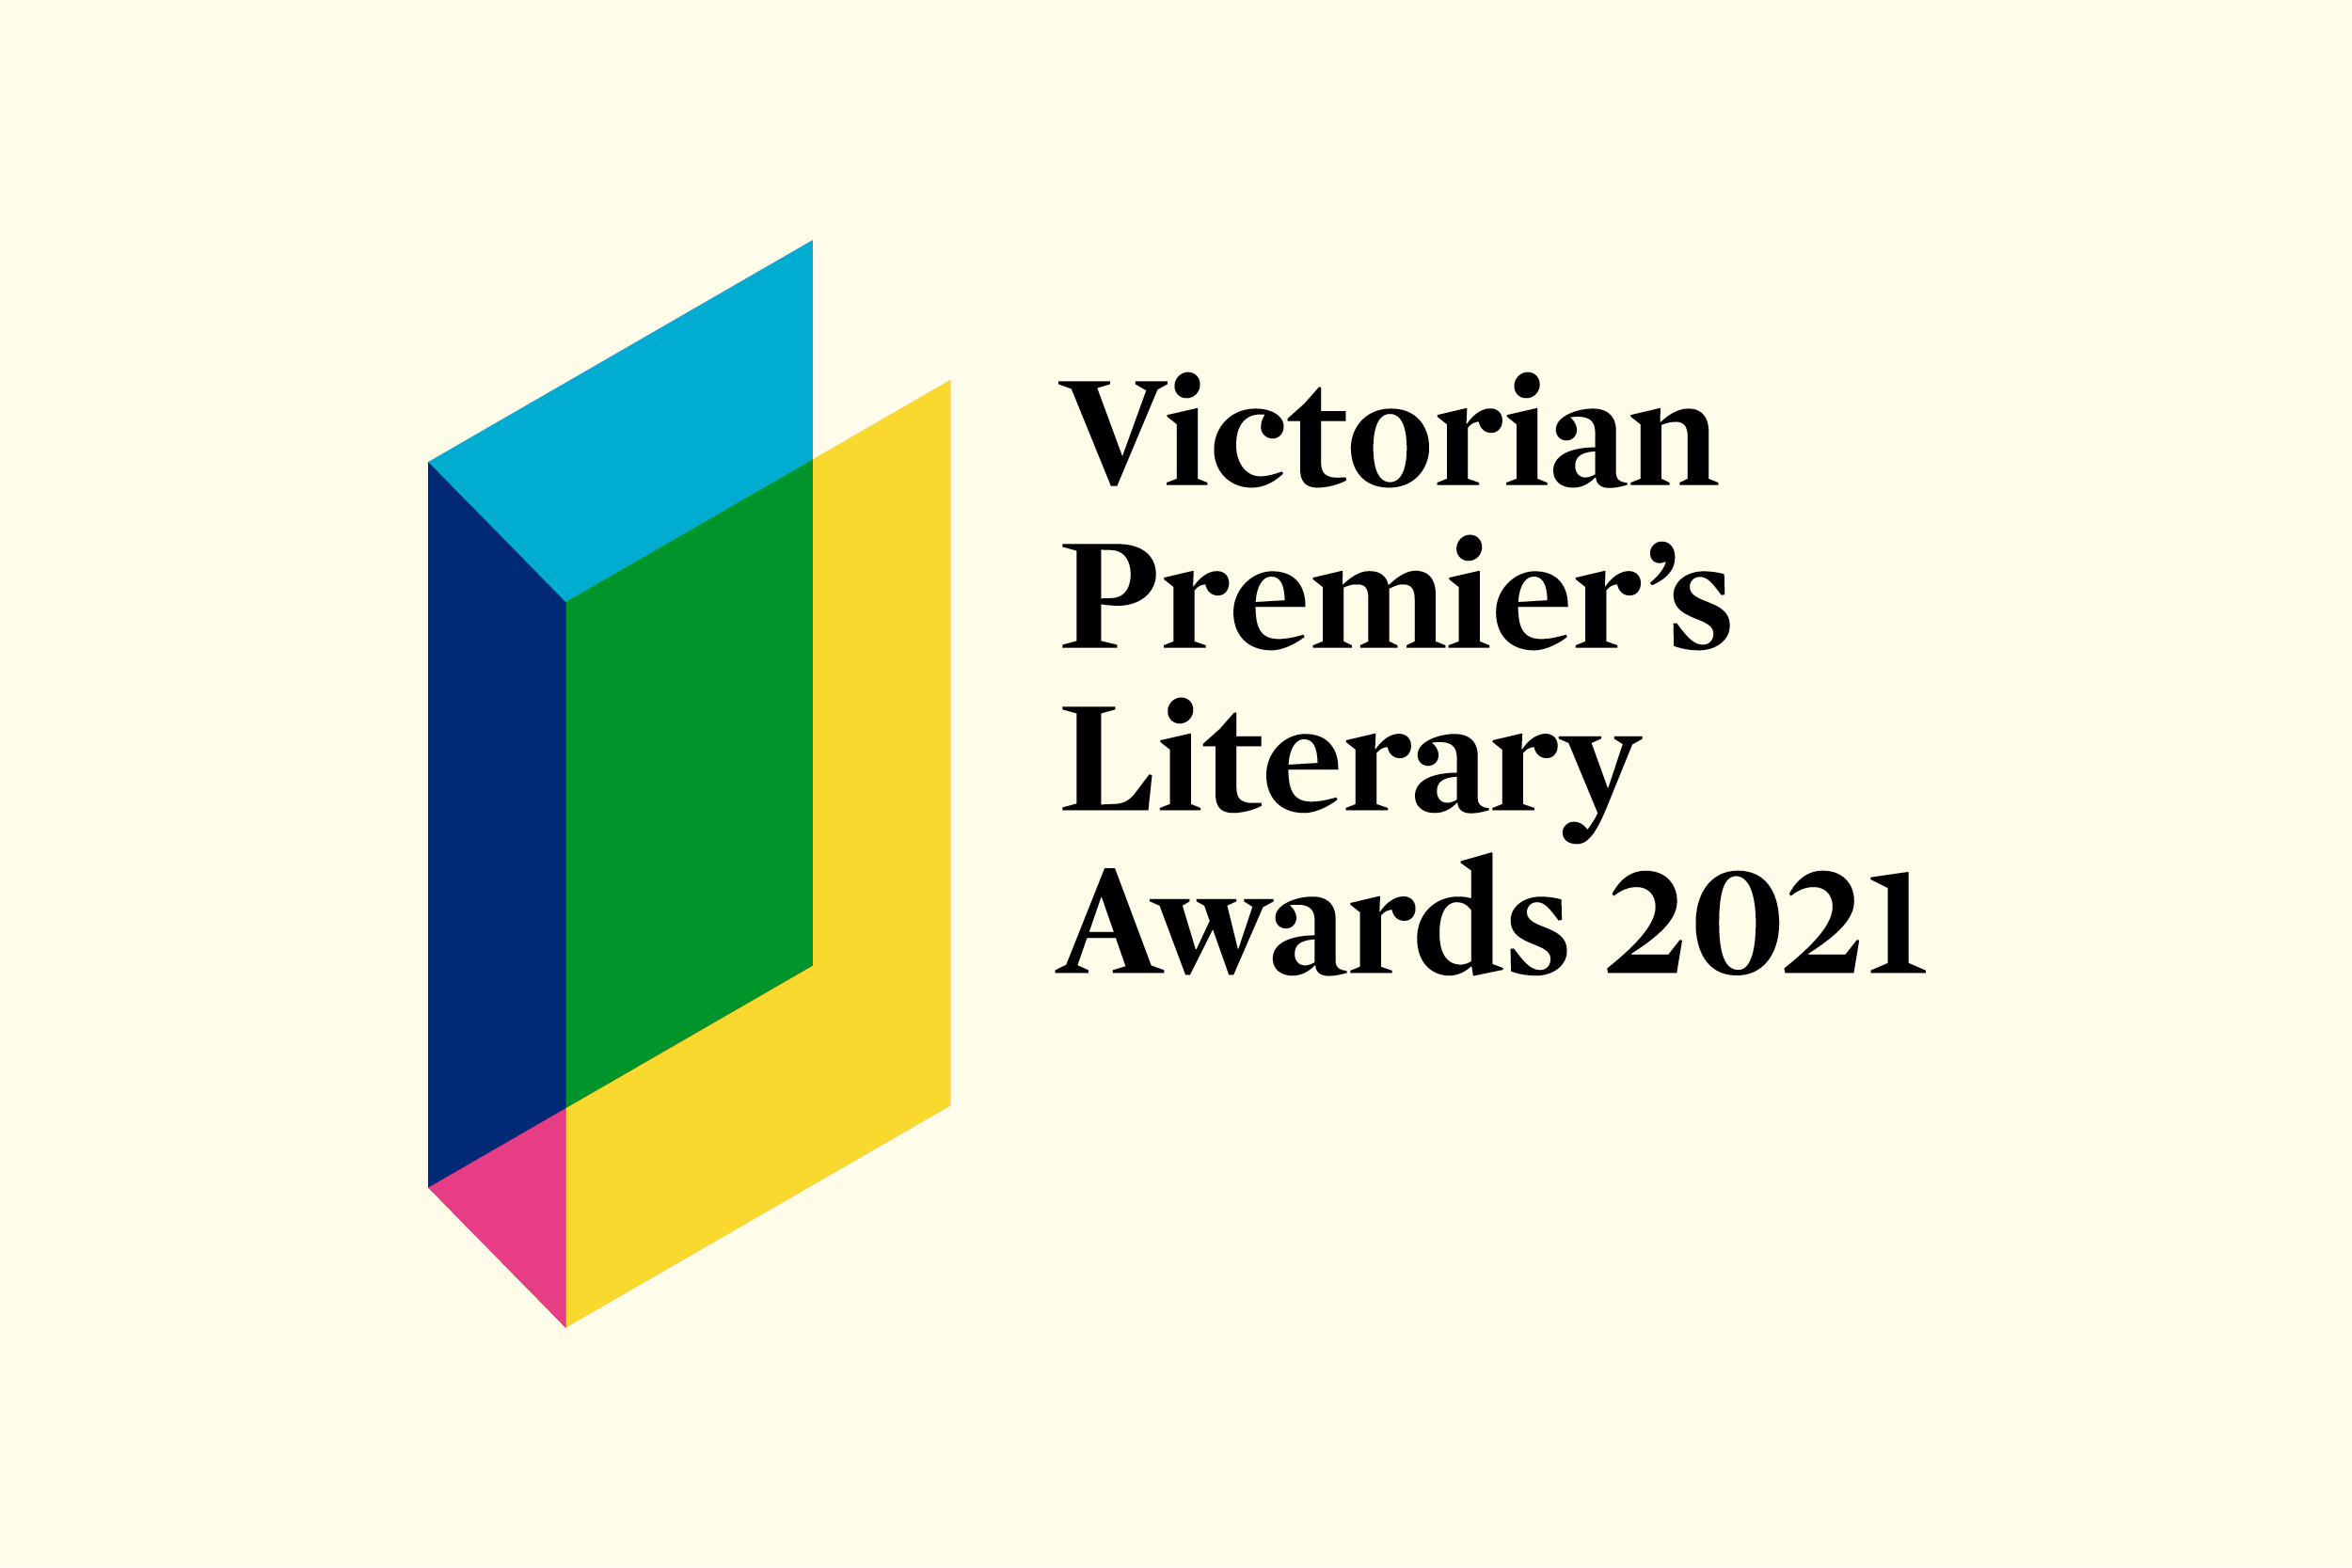 VPLA 2021 Artwork with rainbow outlines of a book next to the words 'Victorian Premier's Literary Awards 2021'